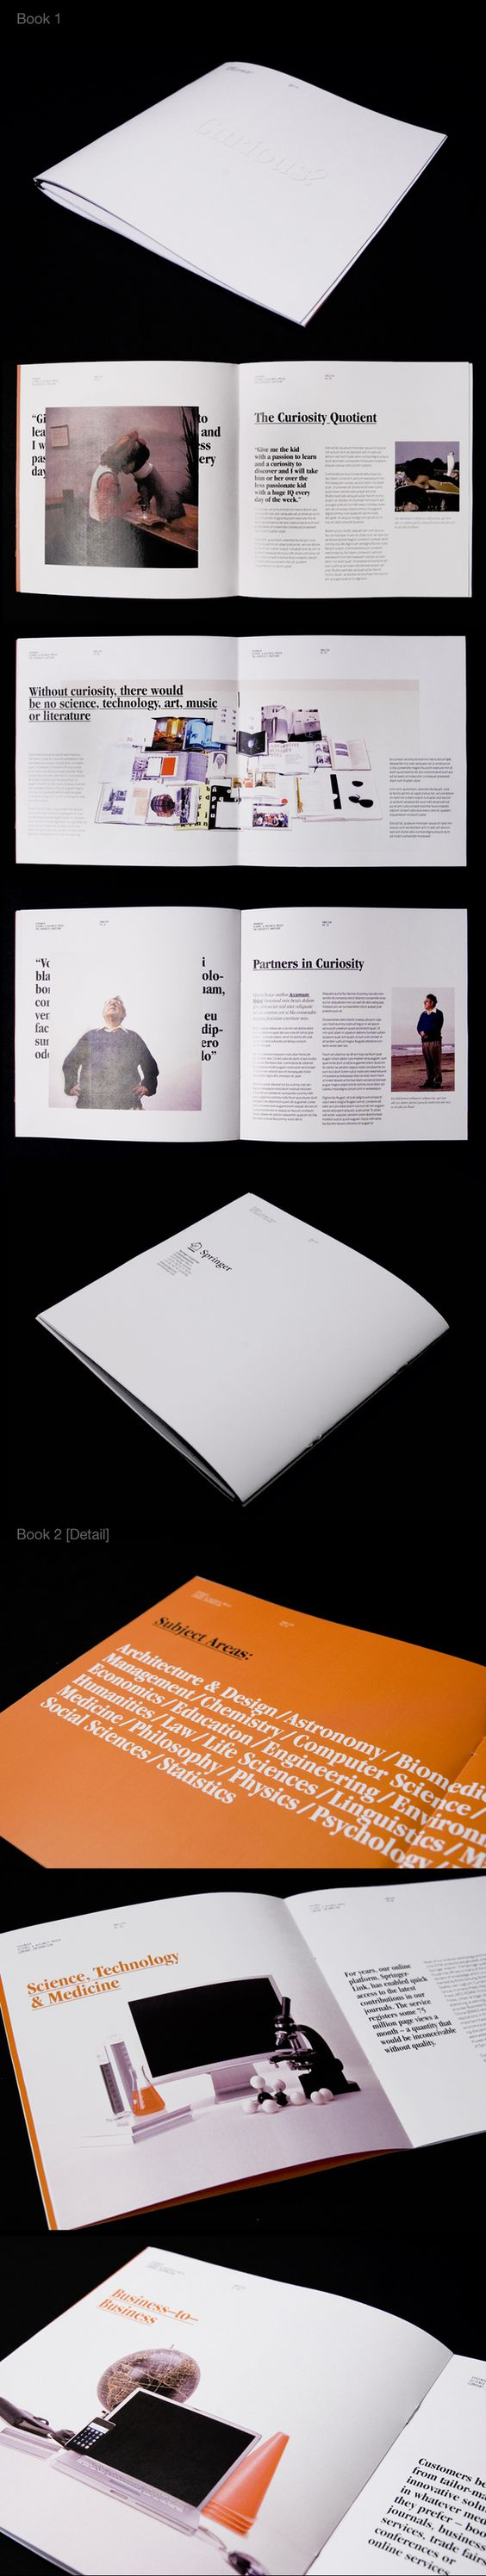 Brochure by Mike Giesser, via Behance